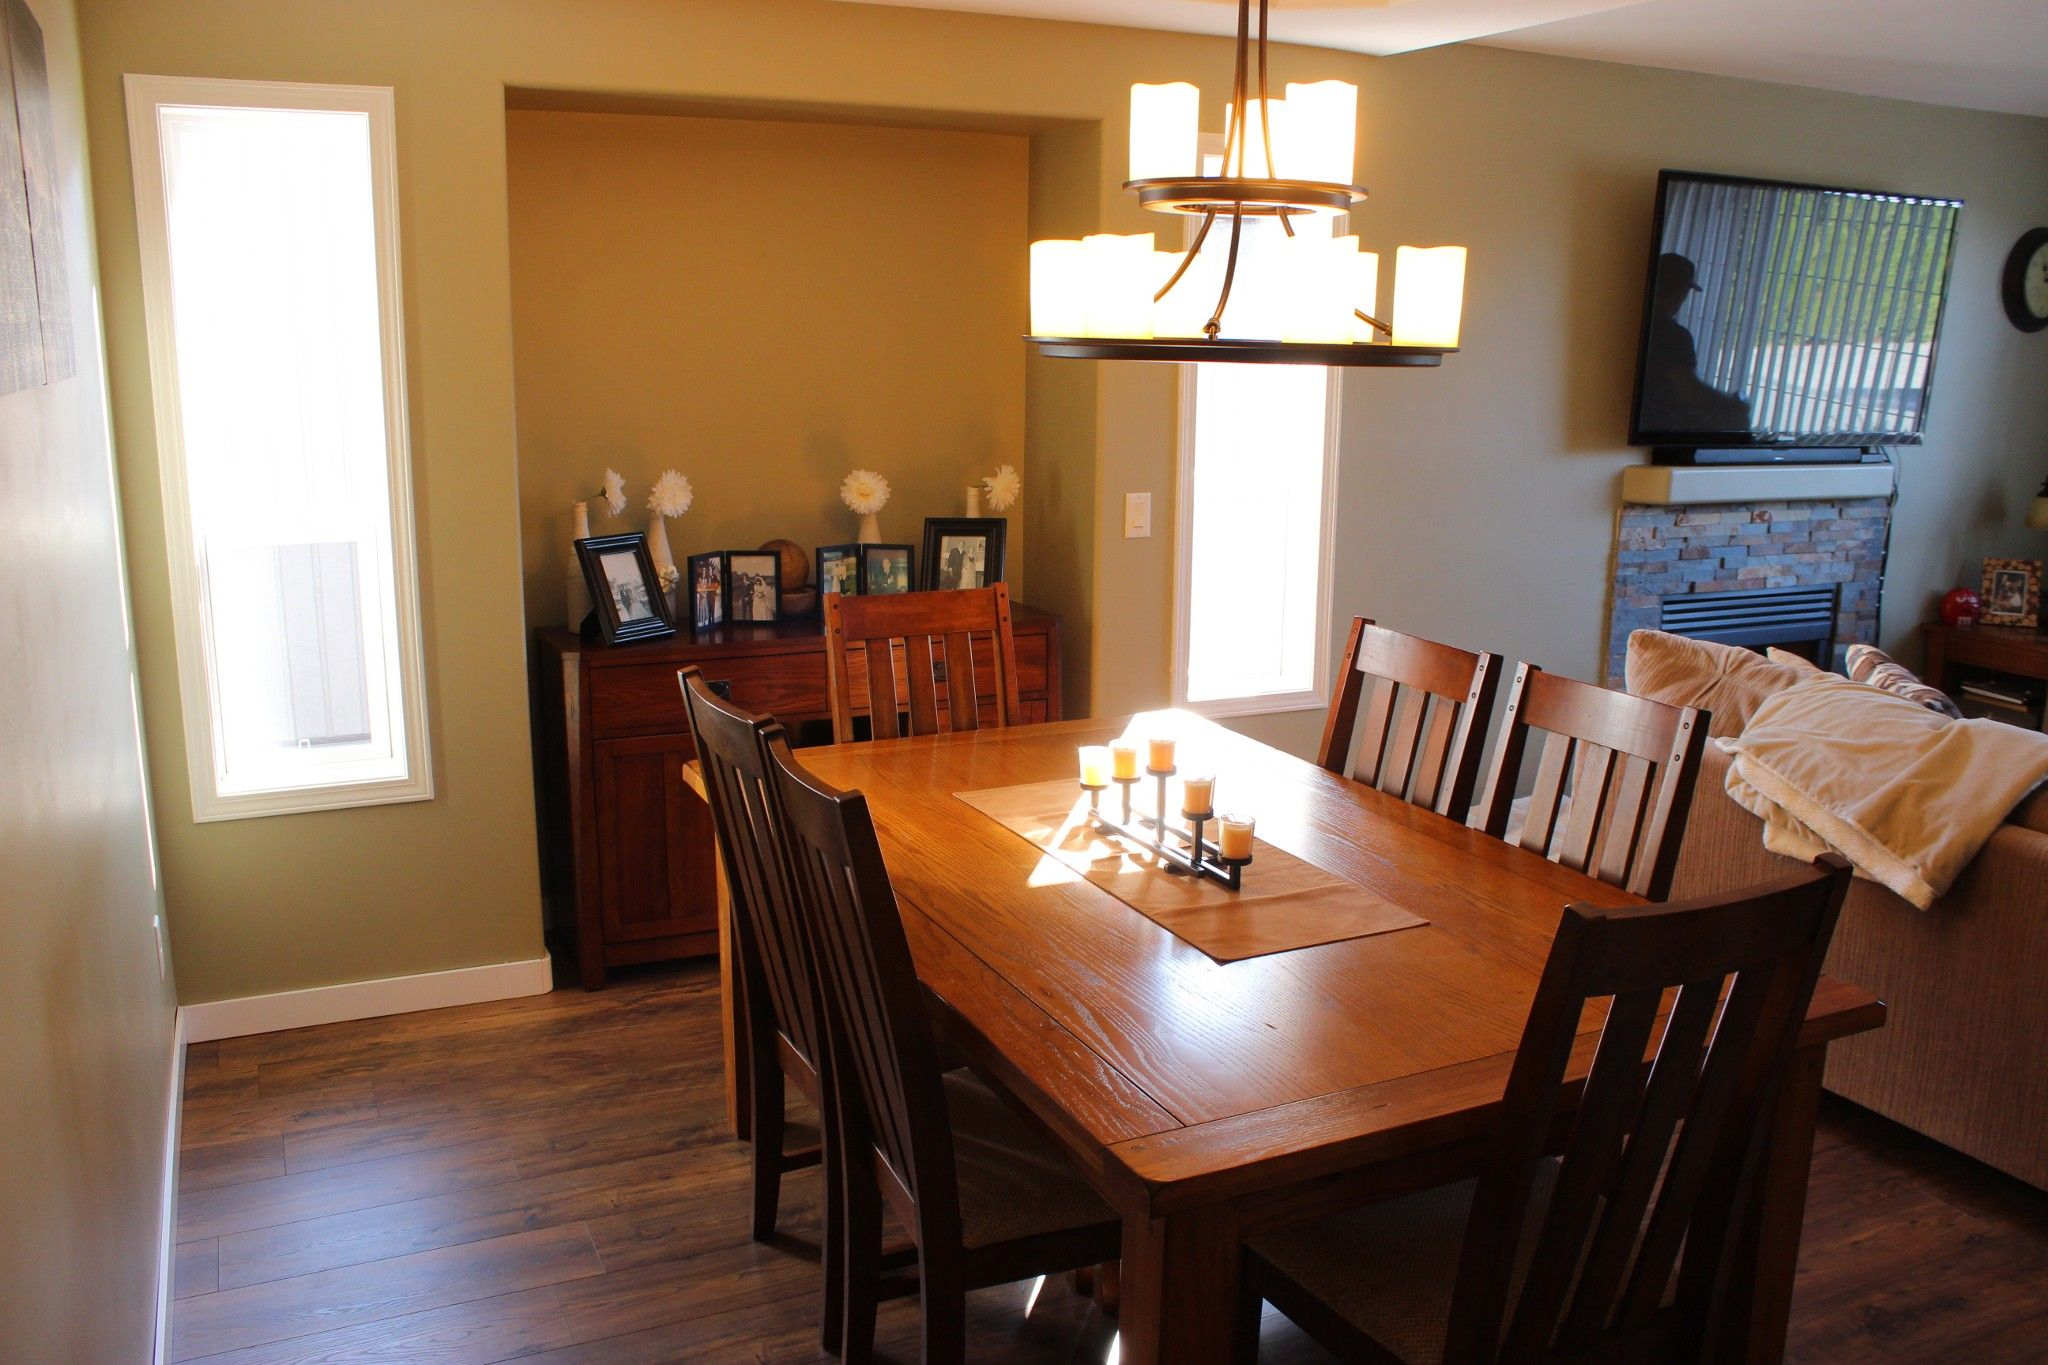 Photo 4: Photos: 3696 Navatanee Drive in Kamloops: South Thompson Valley House for sale : MLS®# 148660